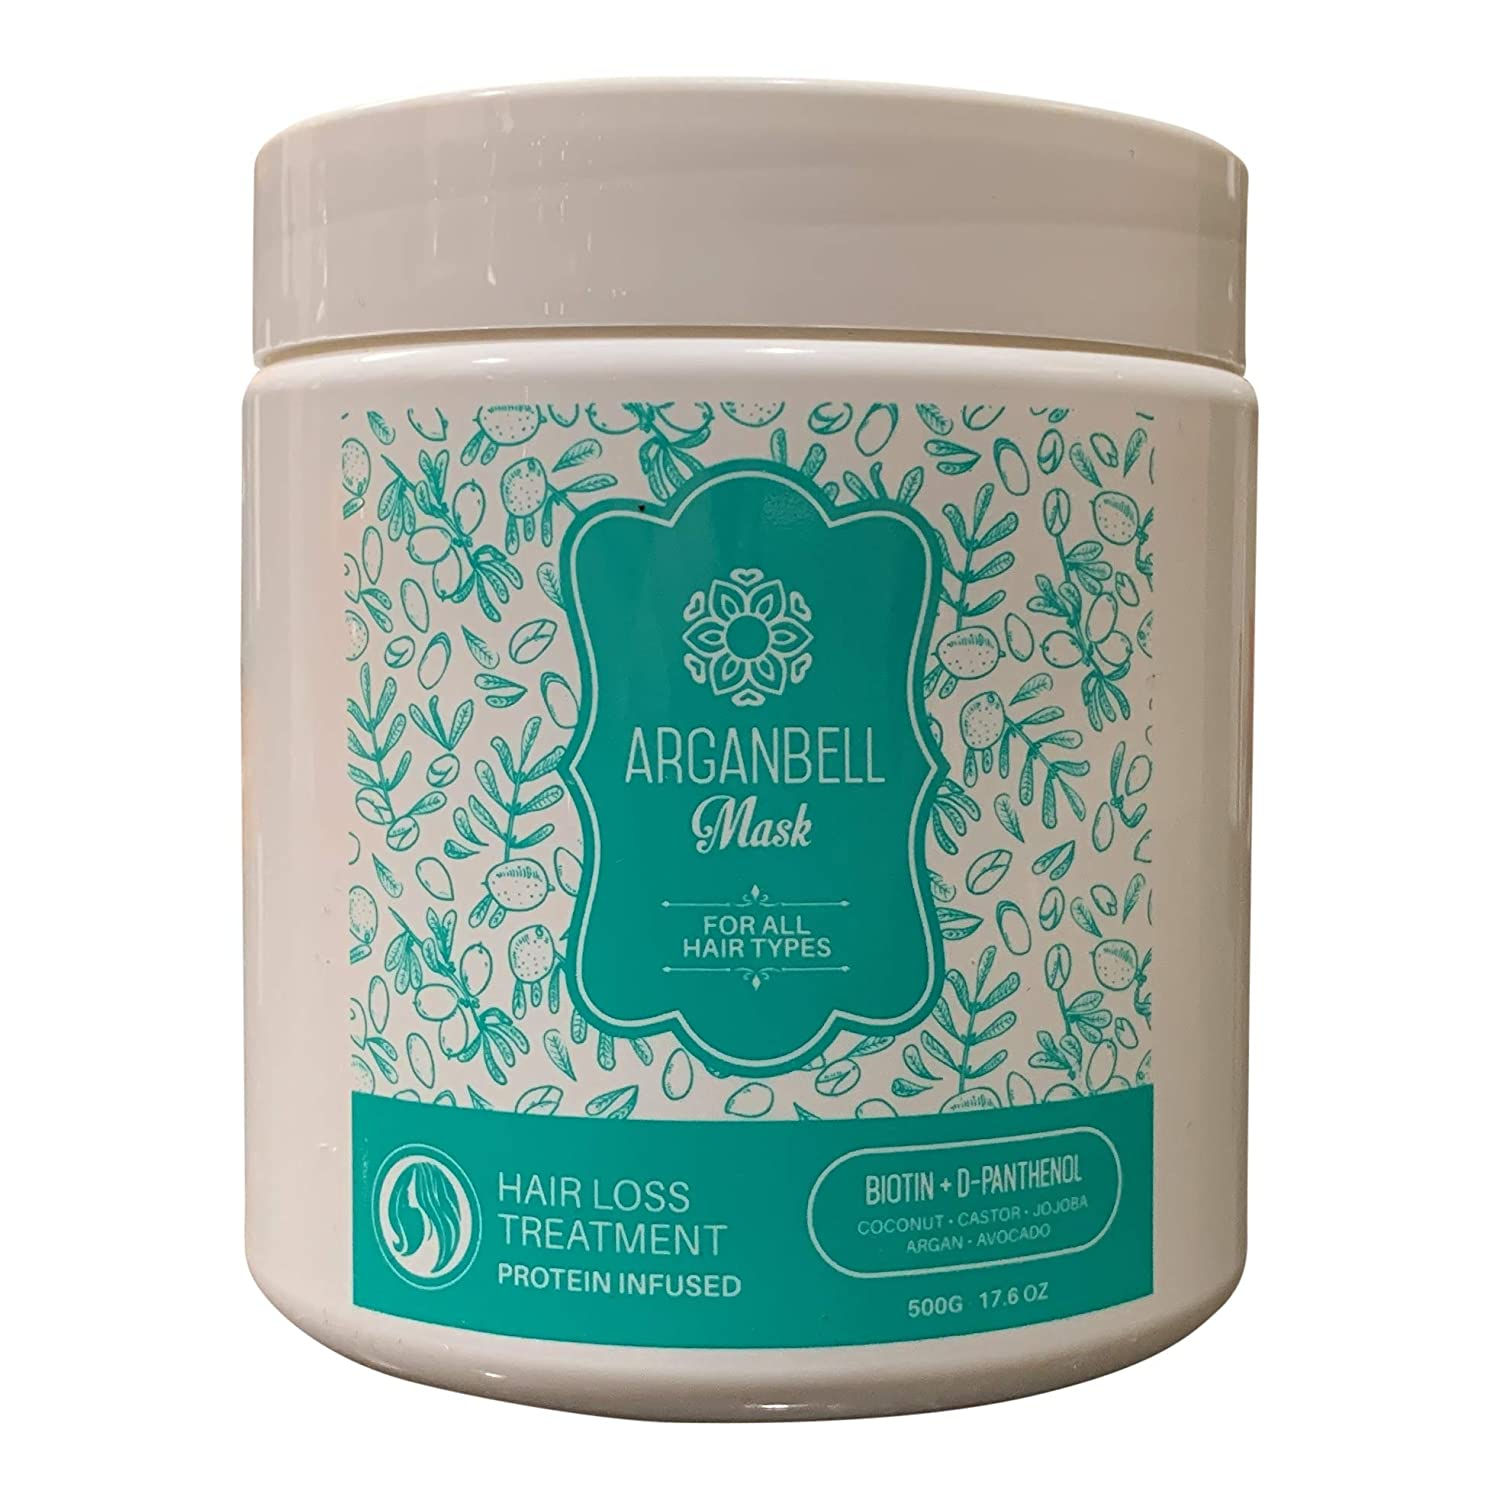 ARGANBELL Mask Hair Super Special SALE held Loss Treatment 16.90 Oz. D- Fl outlet with + Biotin